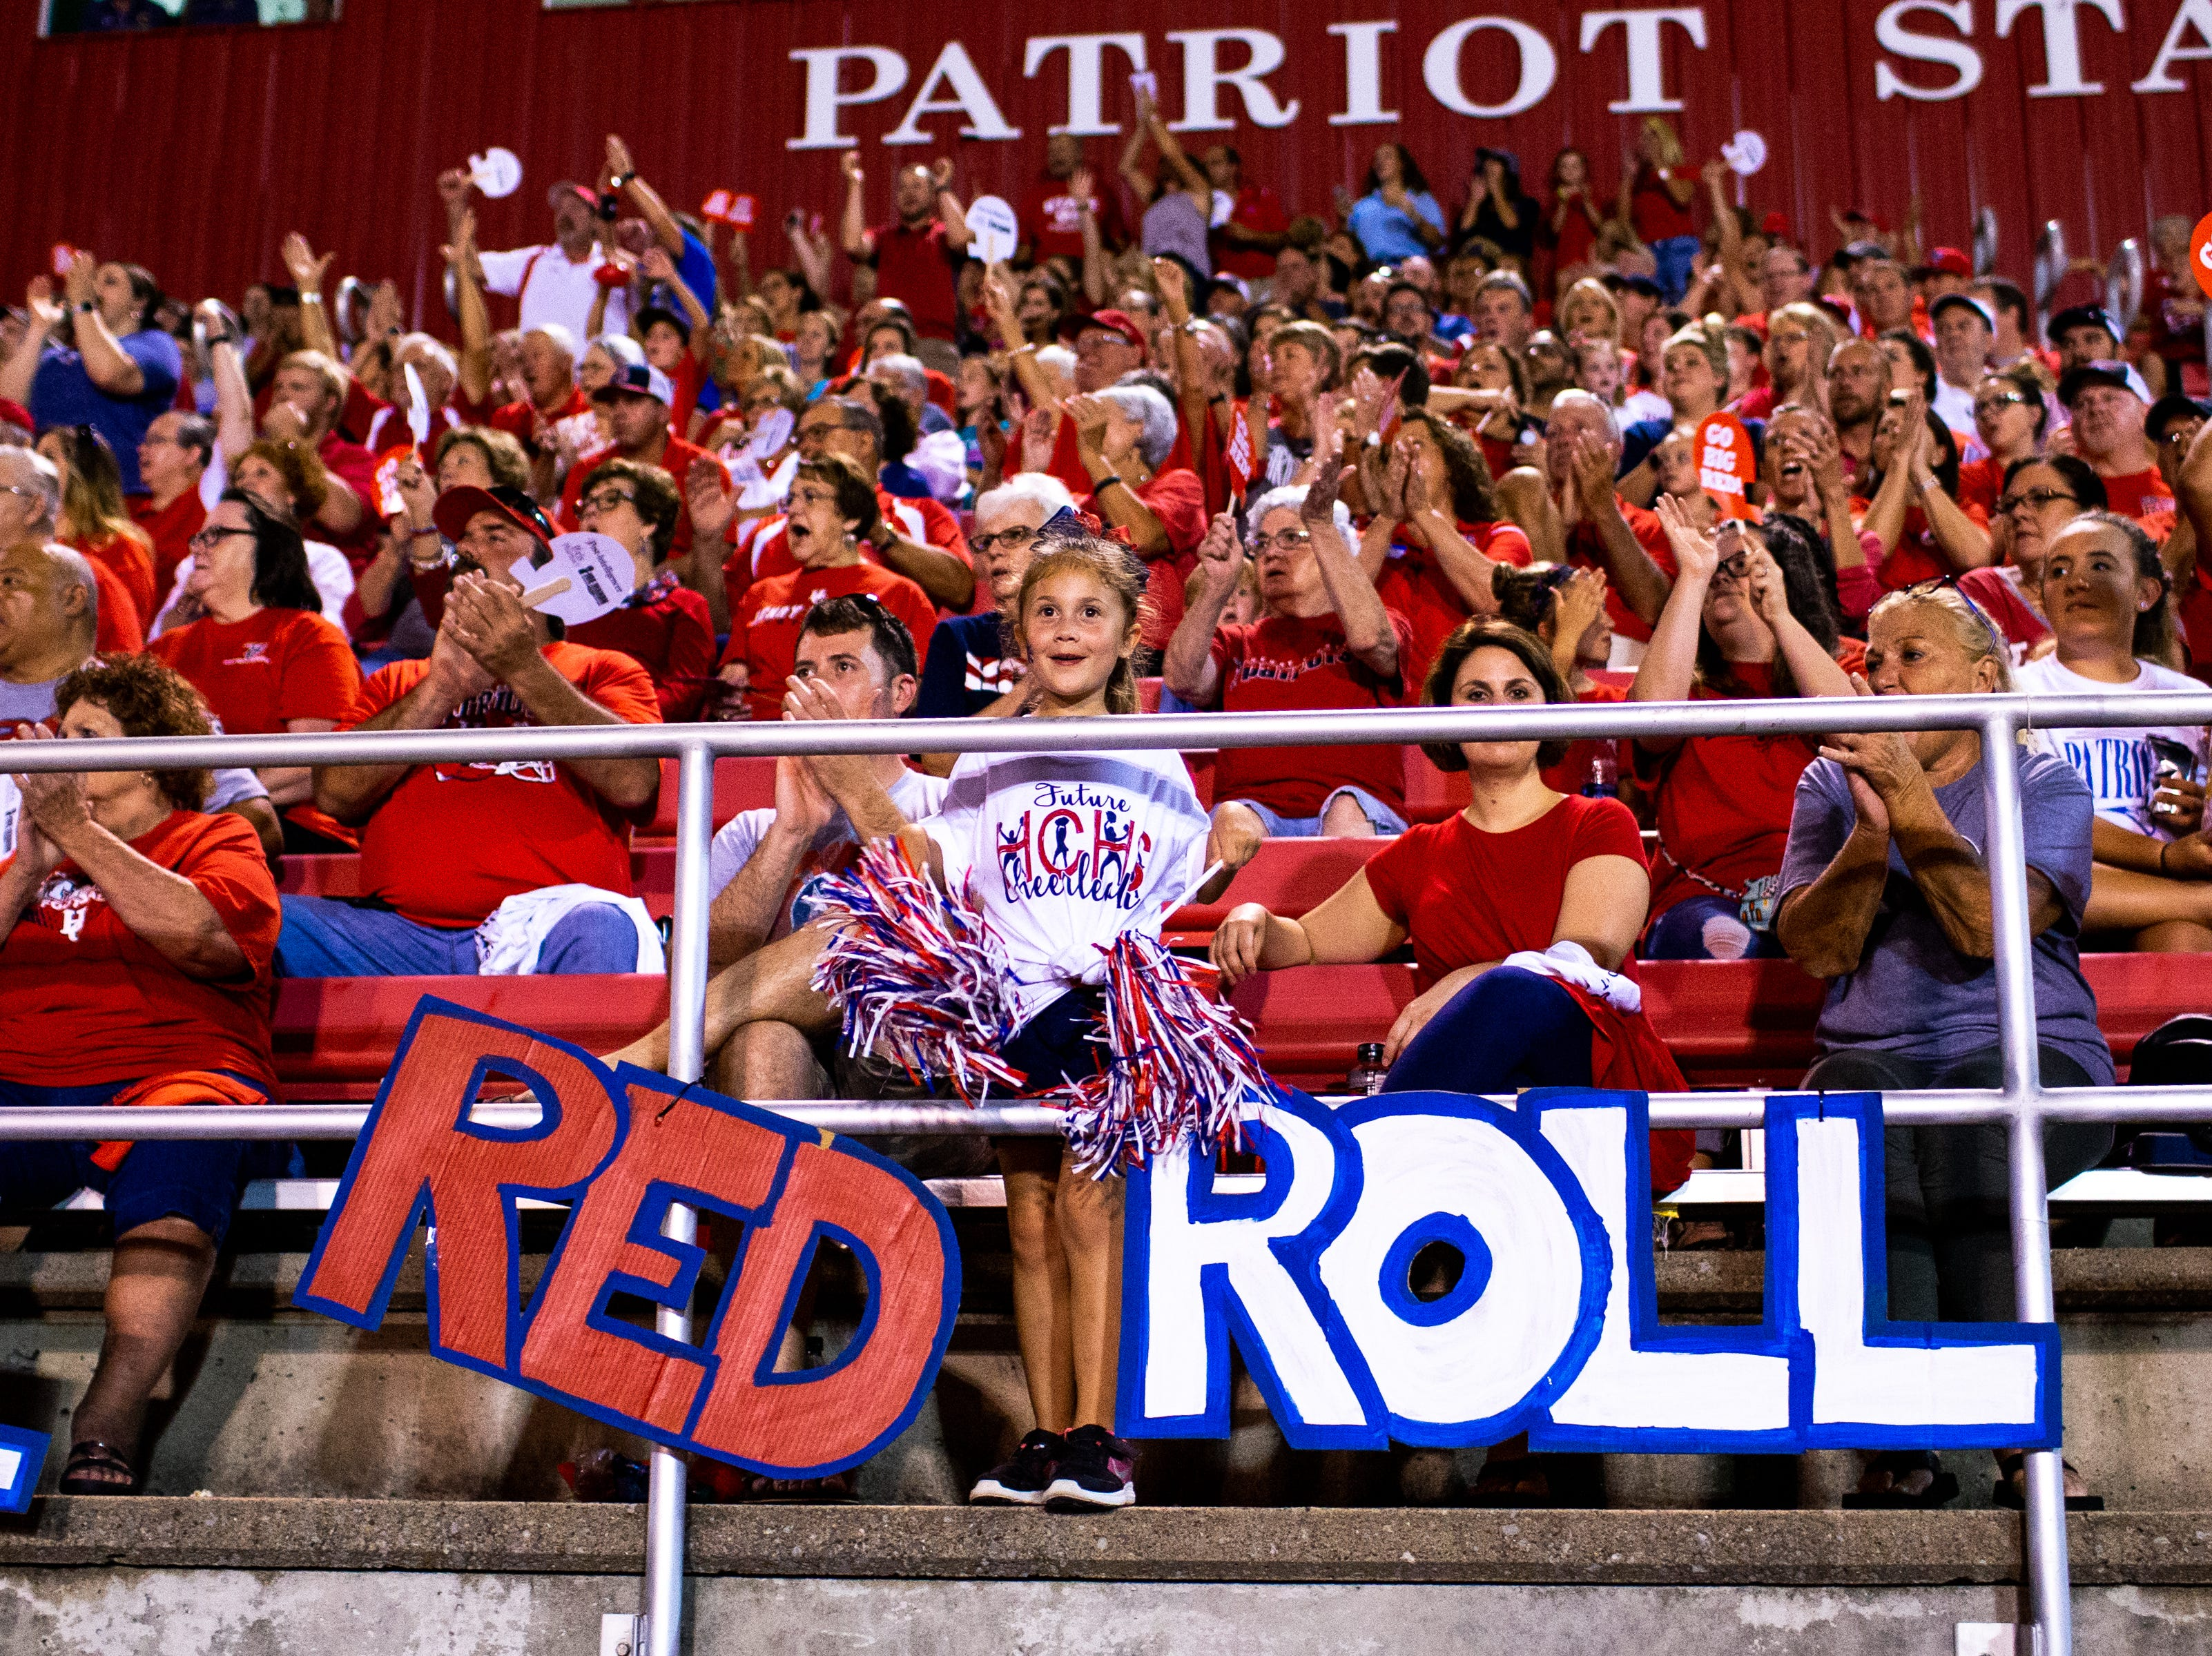 Fans cheer for Henry County during the first half at Henry County Friday, Sept. 14, 2018, in Paris, Tenn.